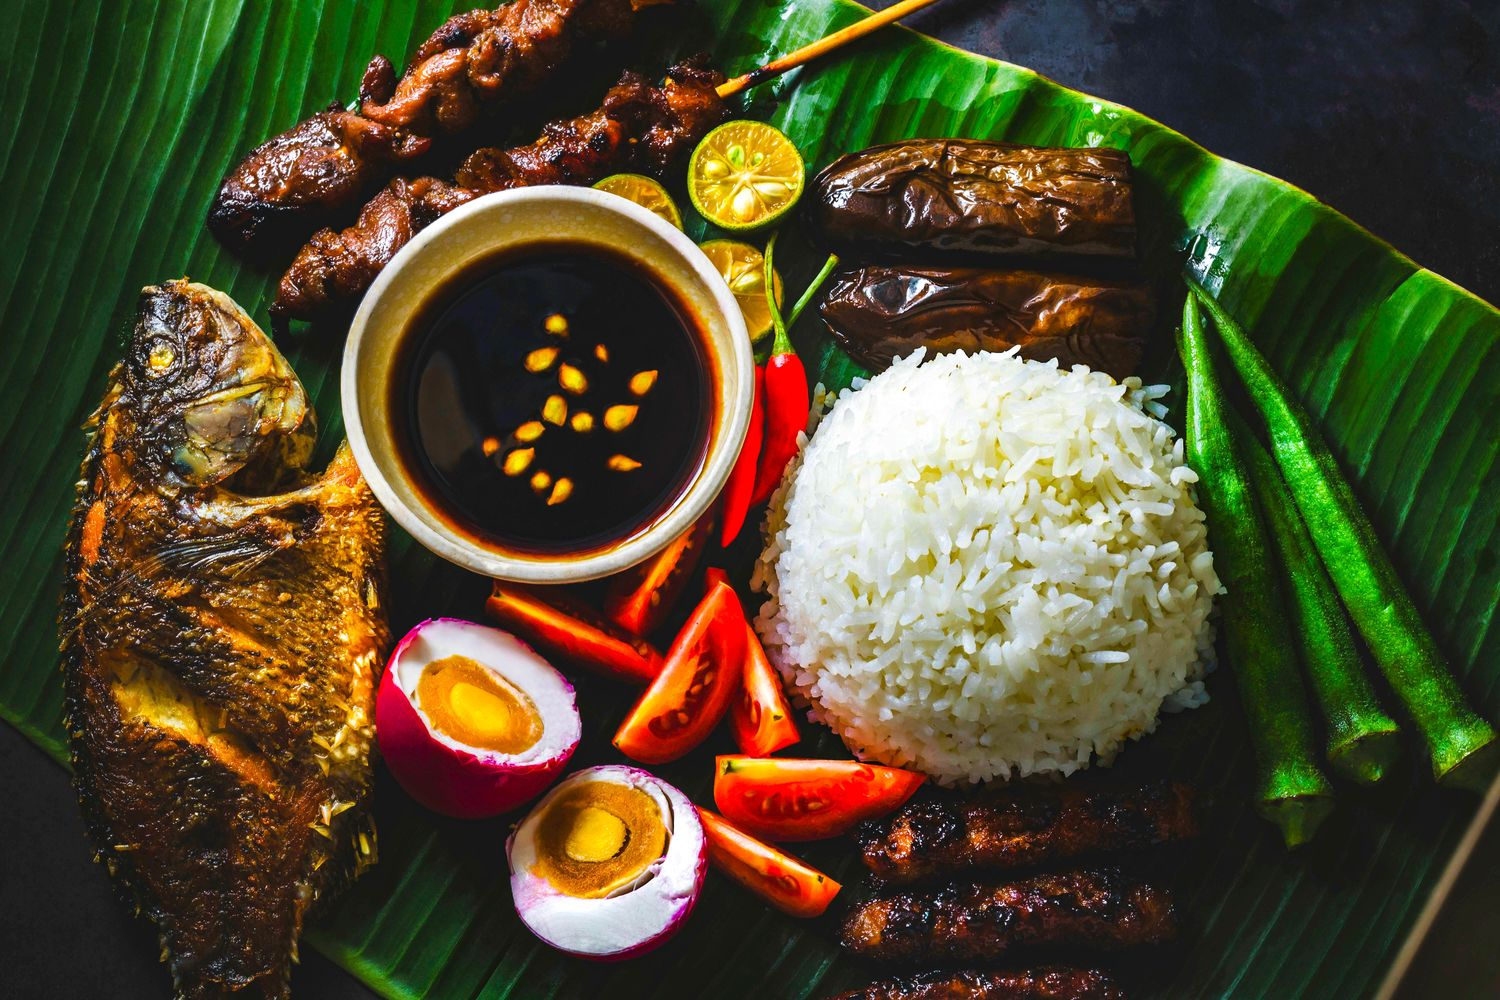 Rice, vegetables, eggs, and meats on banana leaves